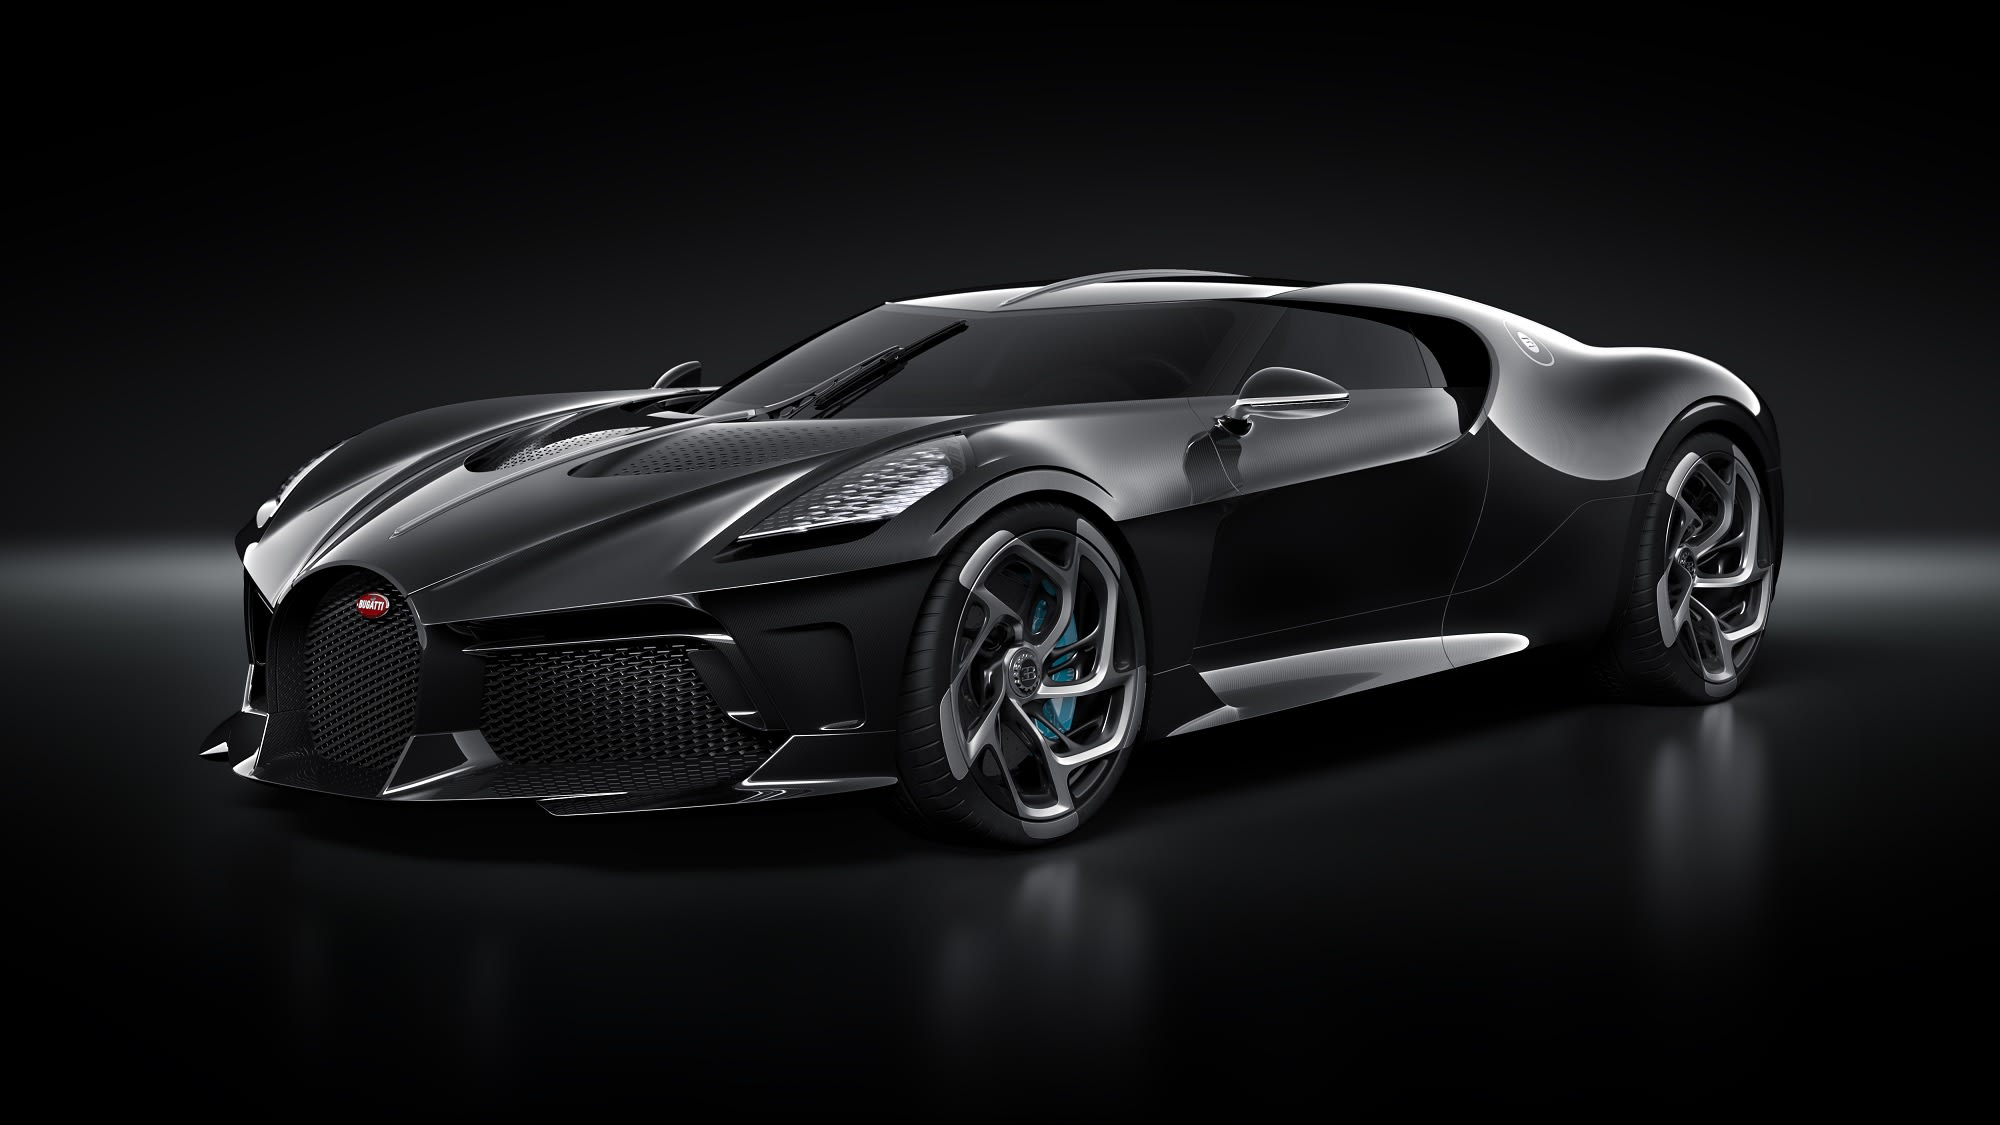 Bugatti just unveiled the most expensive new car ever built